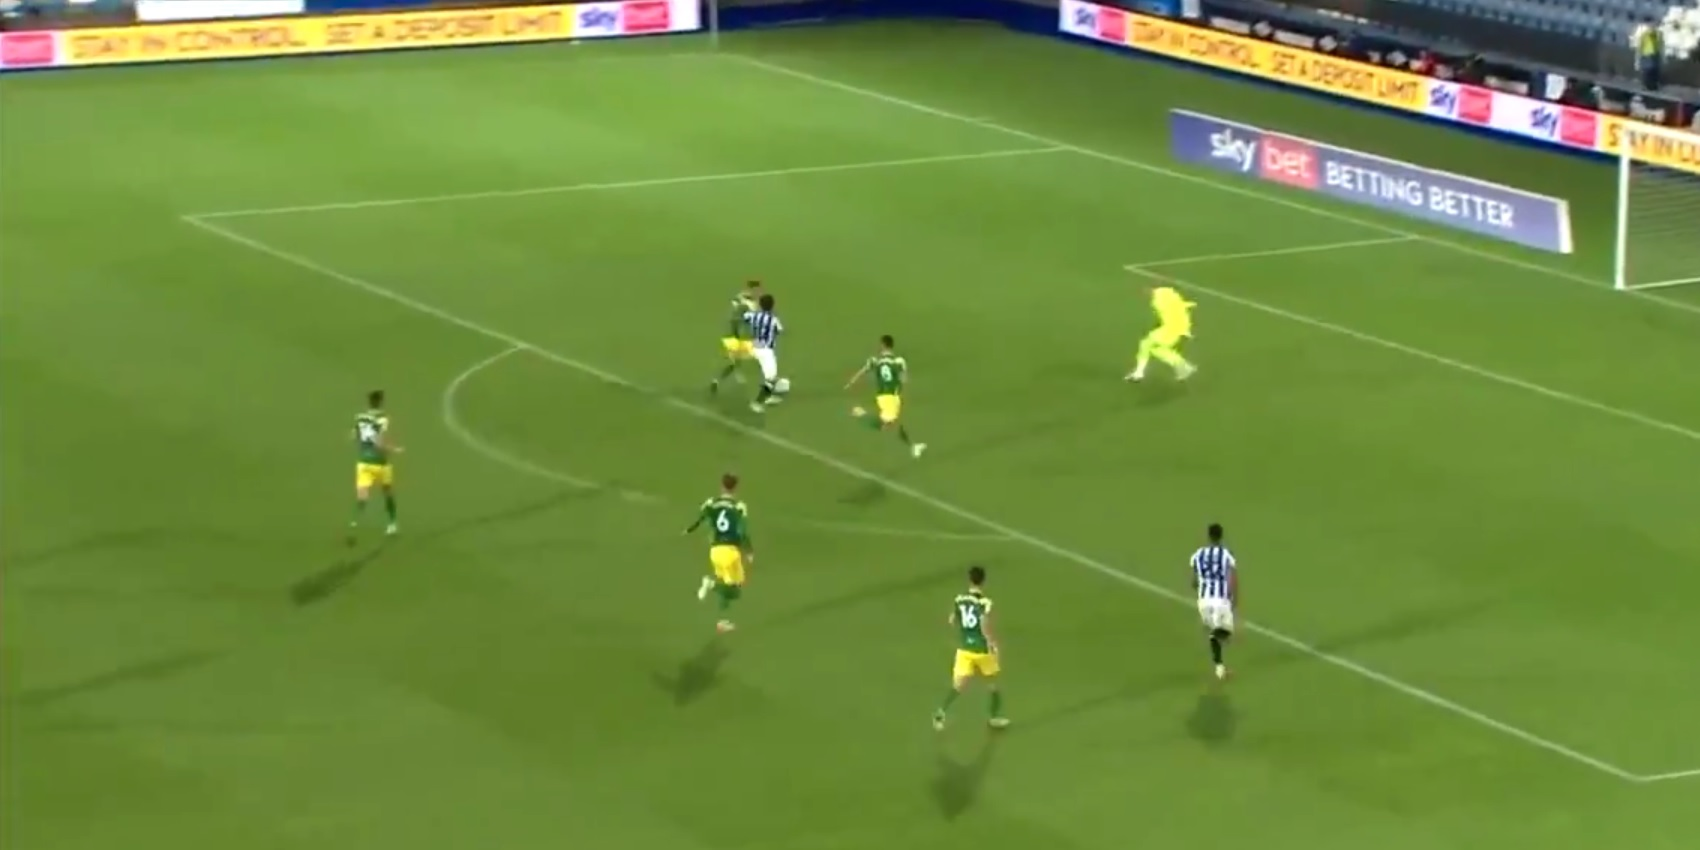 (Video) Liverpool loanee scores obscene own-goal, but fans have noticed a positive